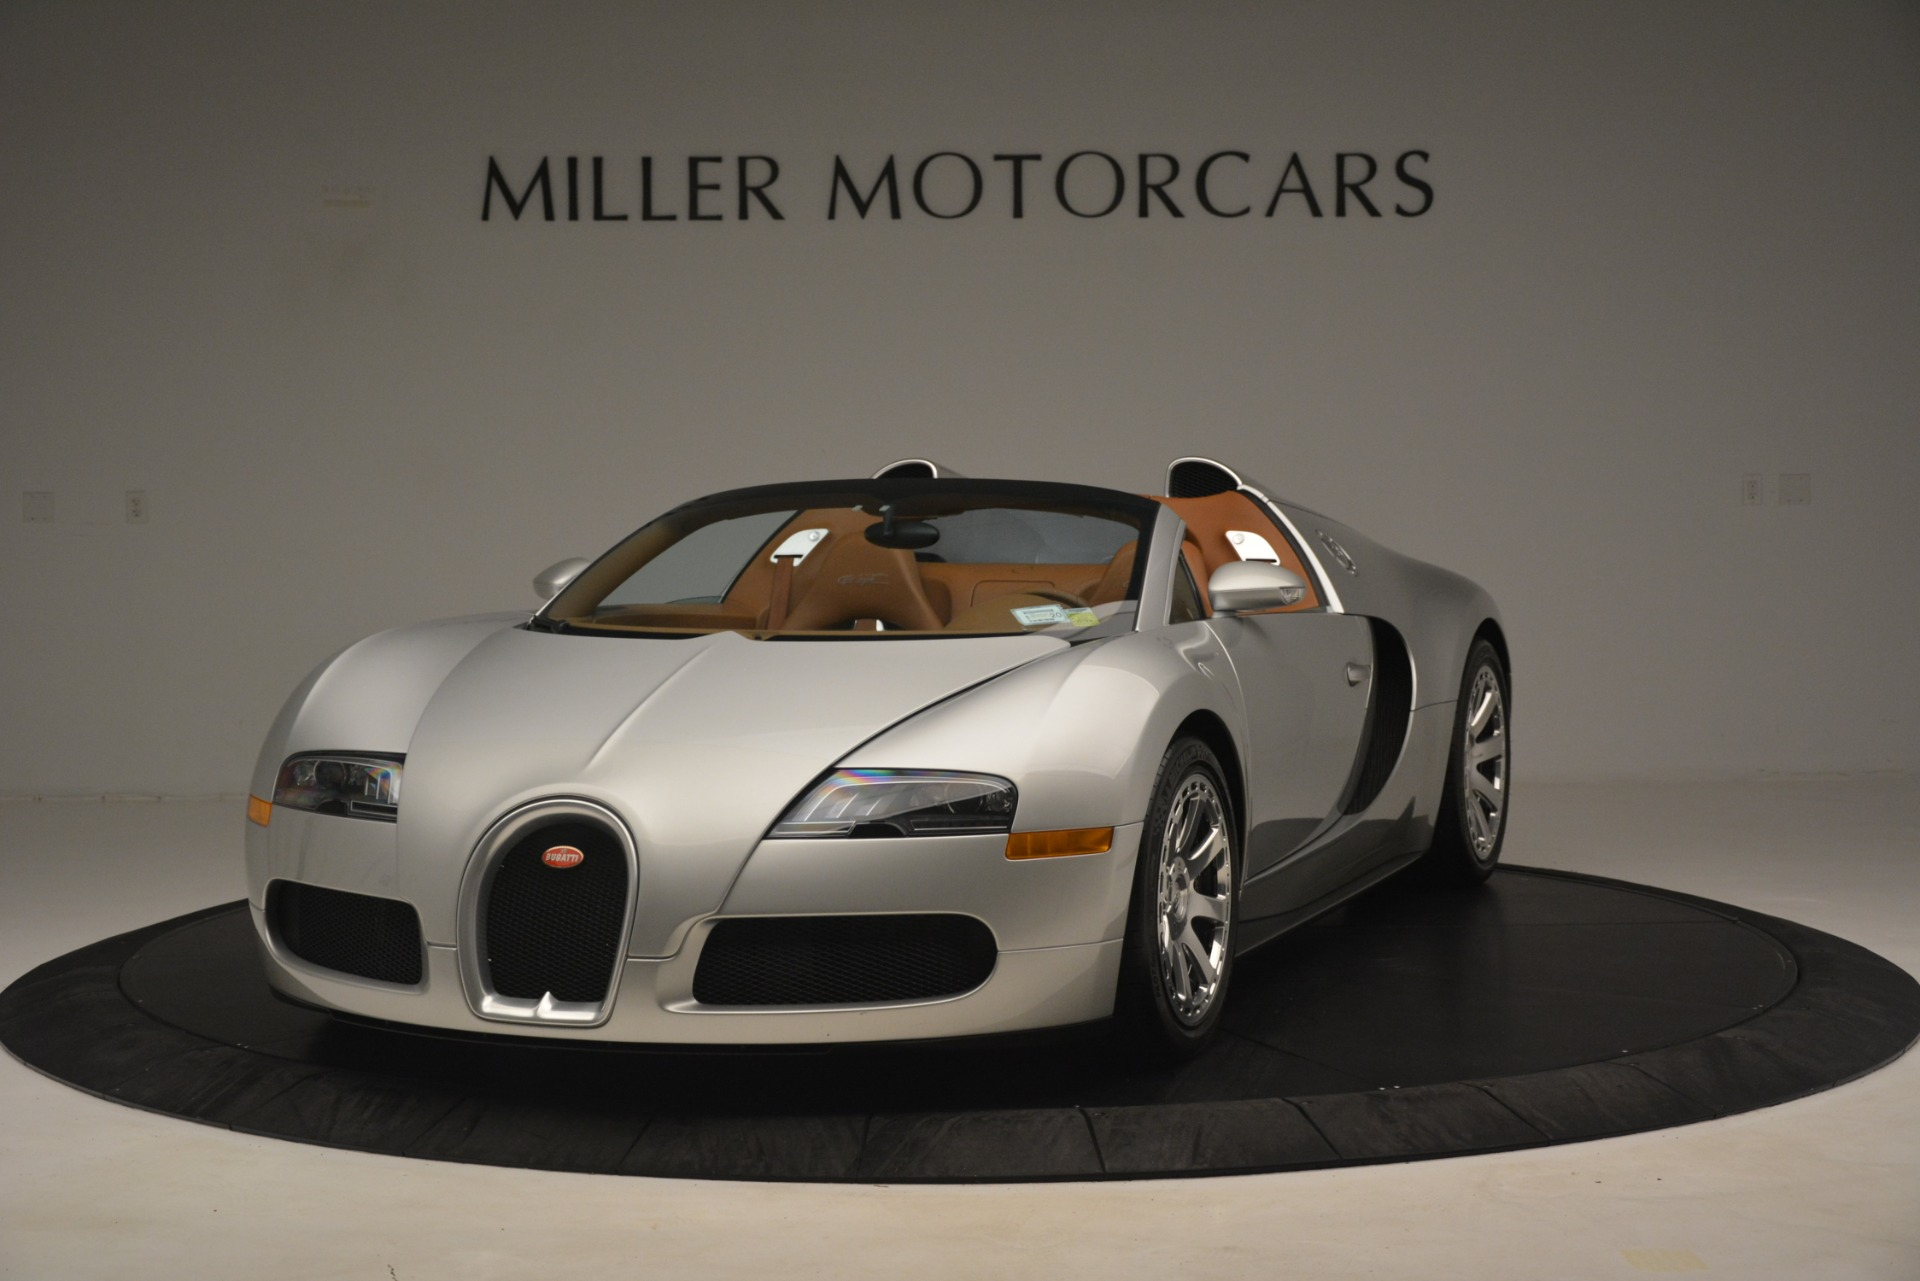 Used 2010 Bugatti Veyron 16.4 Grand Sport for sale Sold at Rolls-Royce Motor Cars Greenwich in Greenwich CT 06830 1